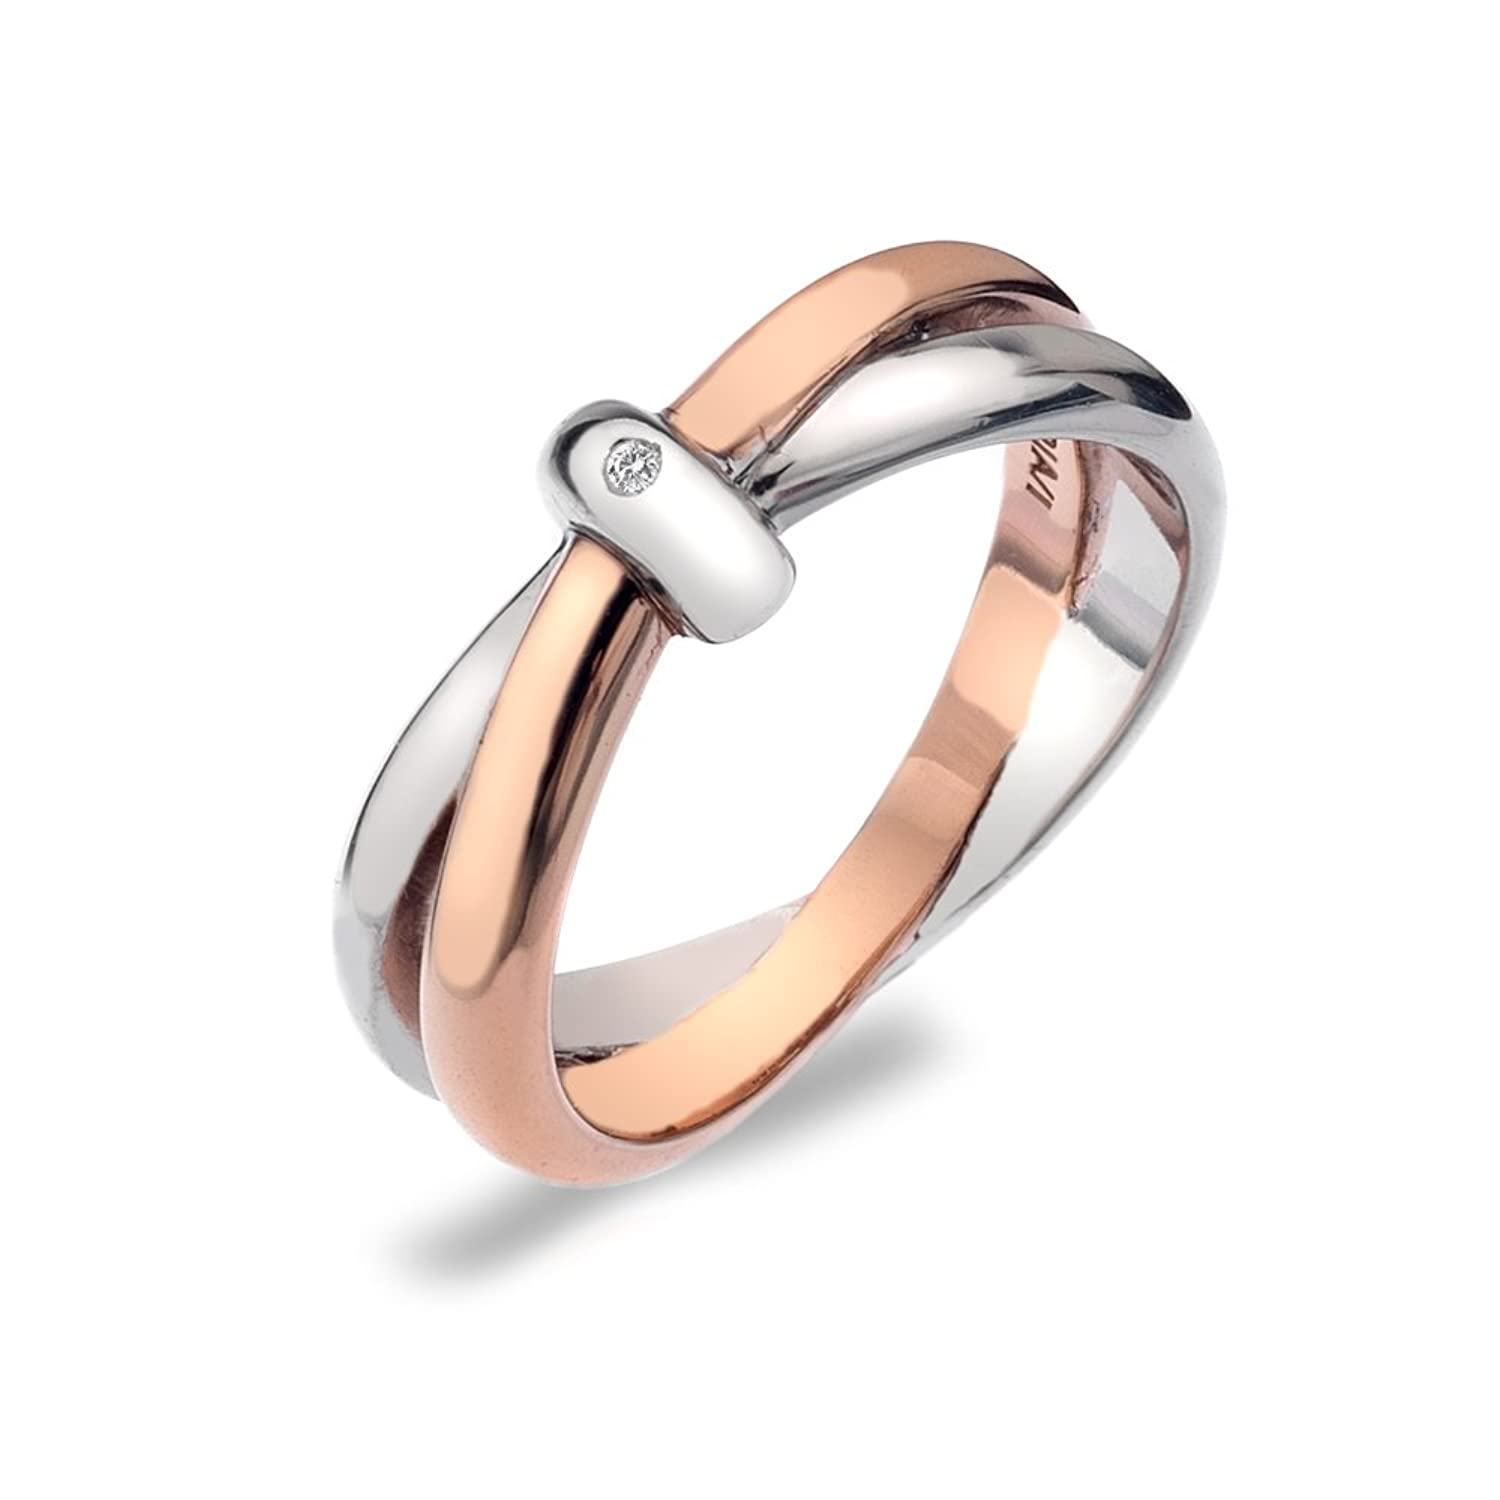 Hot Diamonds Silver and 18ct Rose Gold Plated Eternity Interlocking